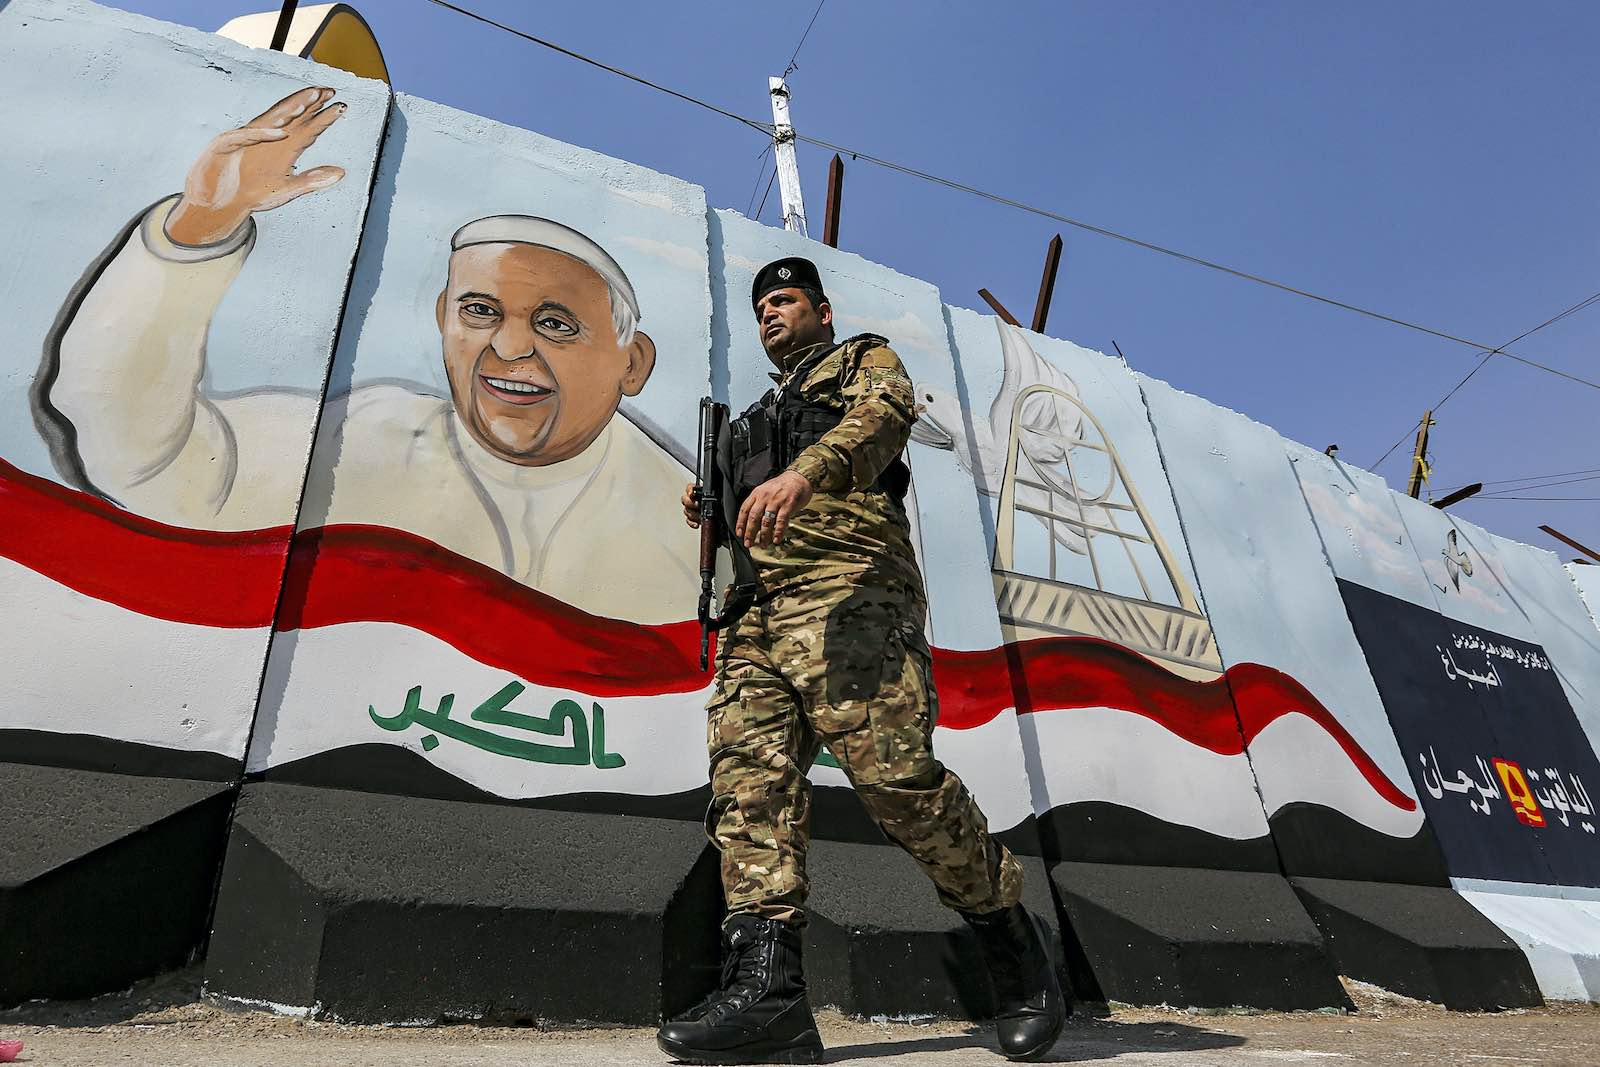 A mural depicting Pope Francis drawn on a blast wall outside the Syriac Catholic Church of Our Lady of Deliverance in the Karrada district of Iraq's capital Baghdad, 1 March (Sabah Arar/AFP via Getty Images)